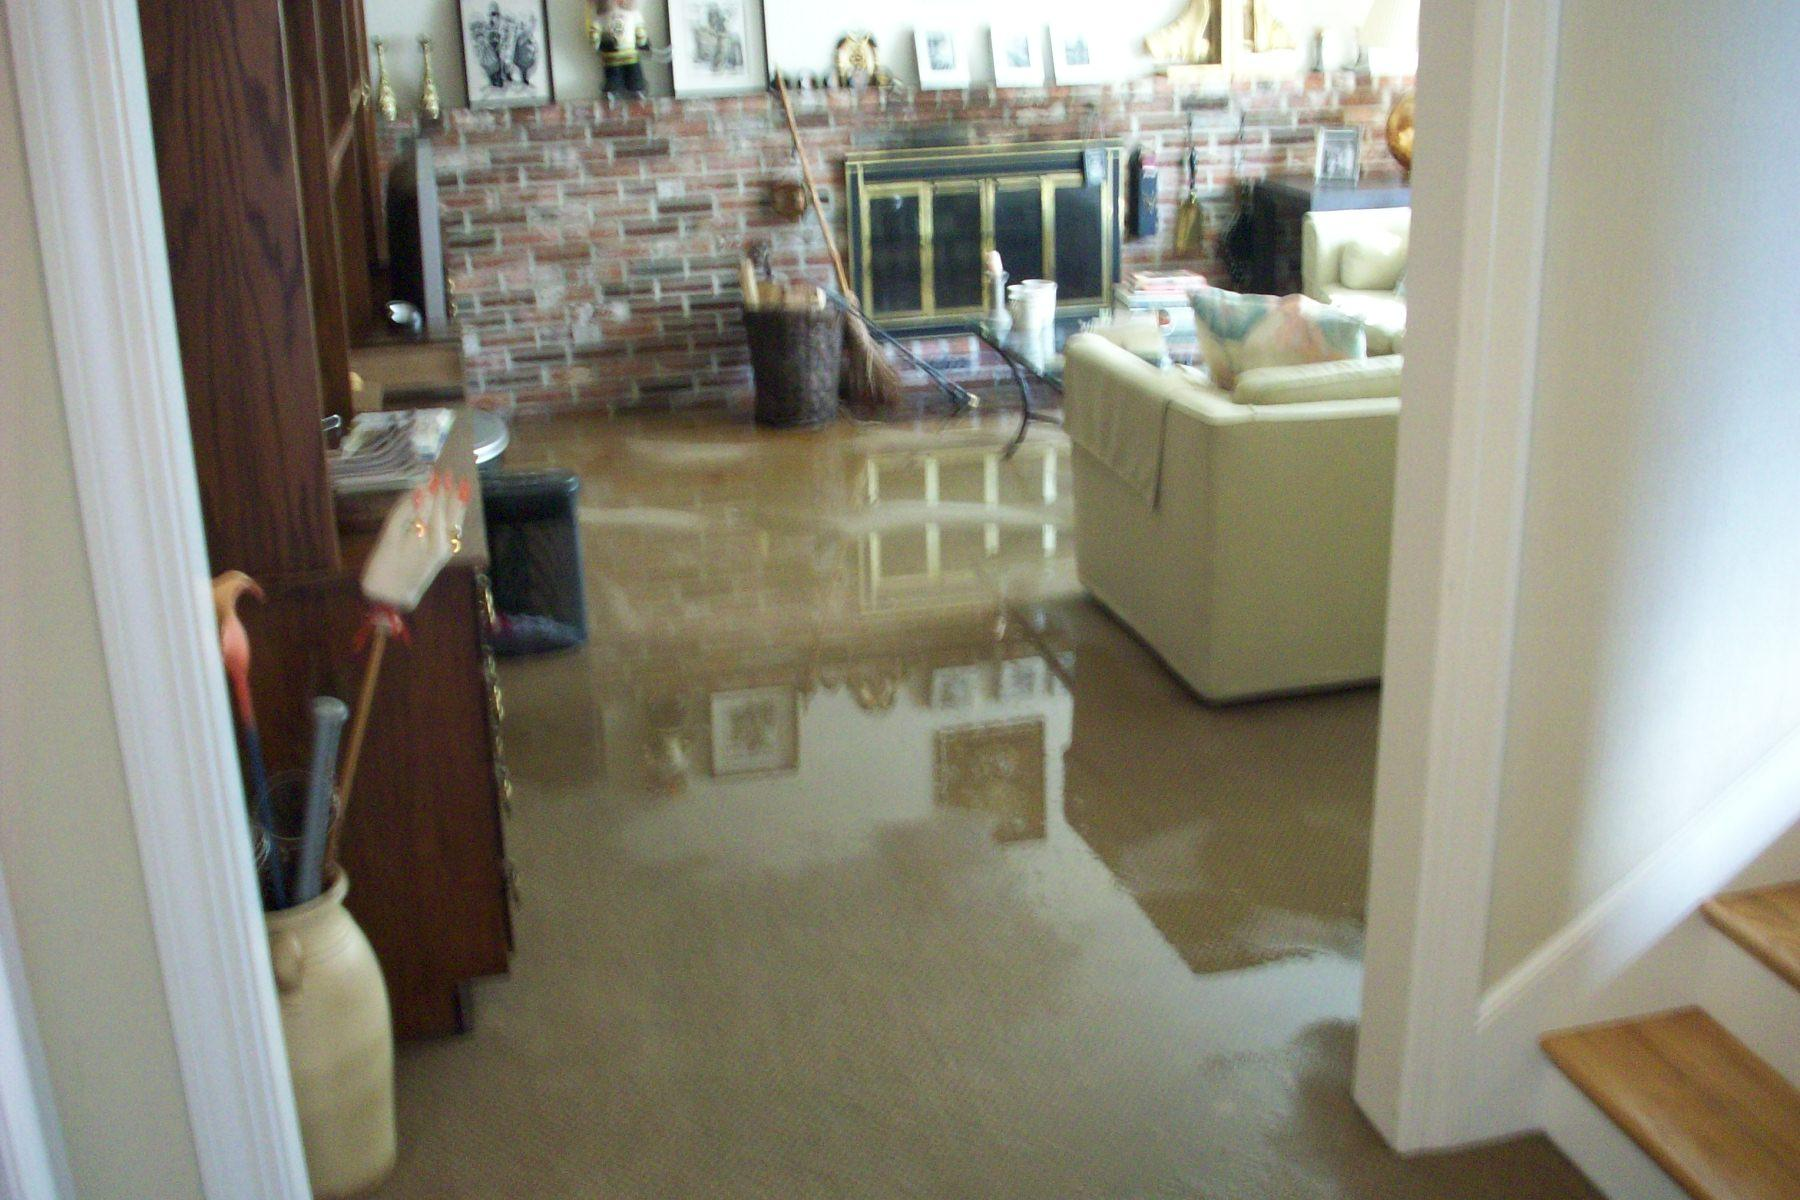 & How to Dry a Flooded Basement - Yourself